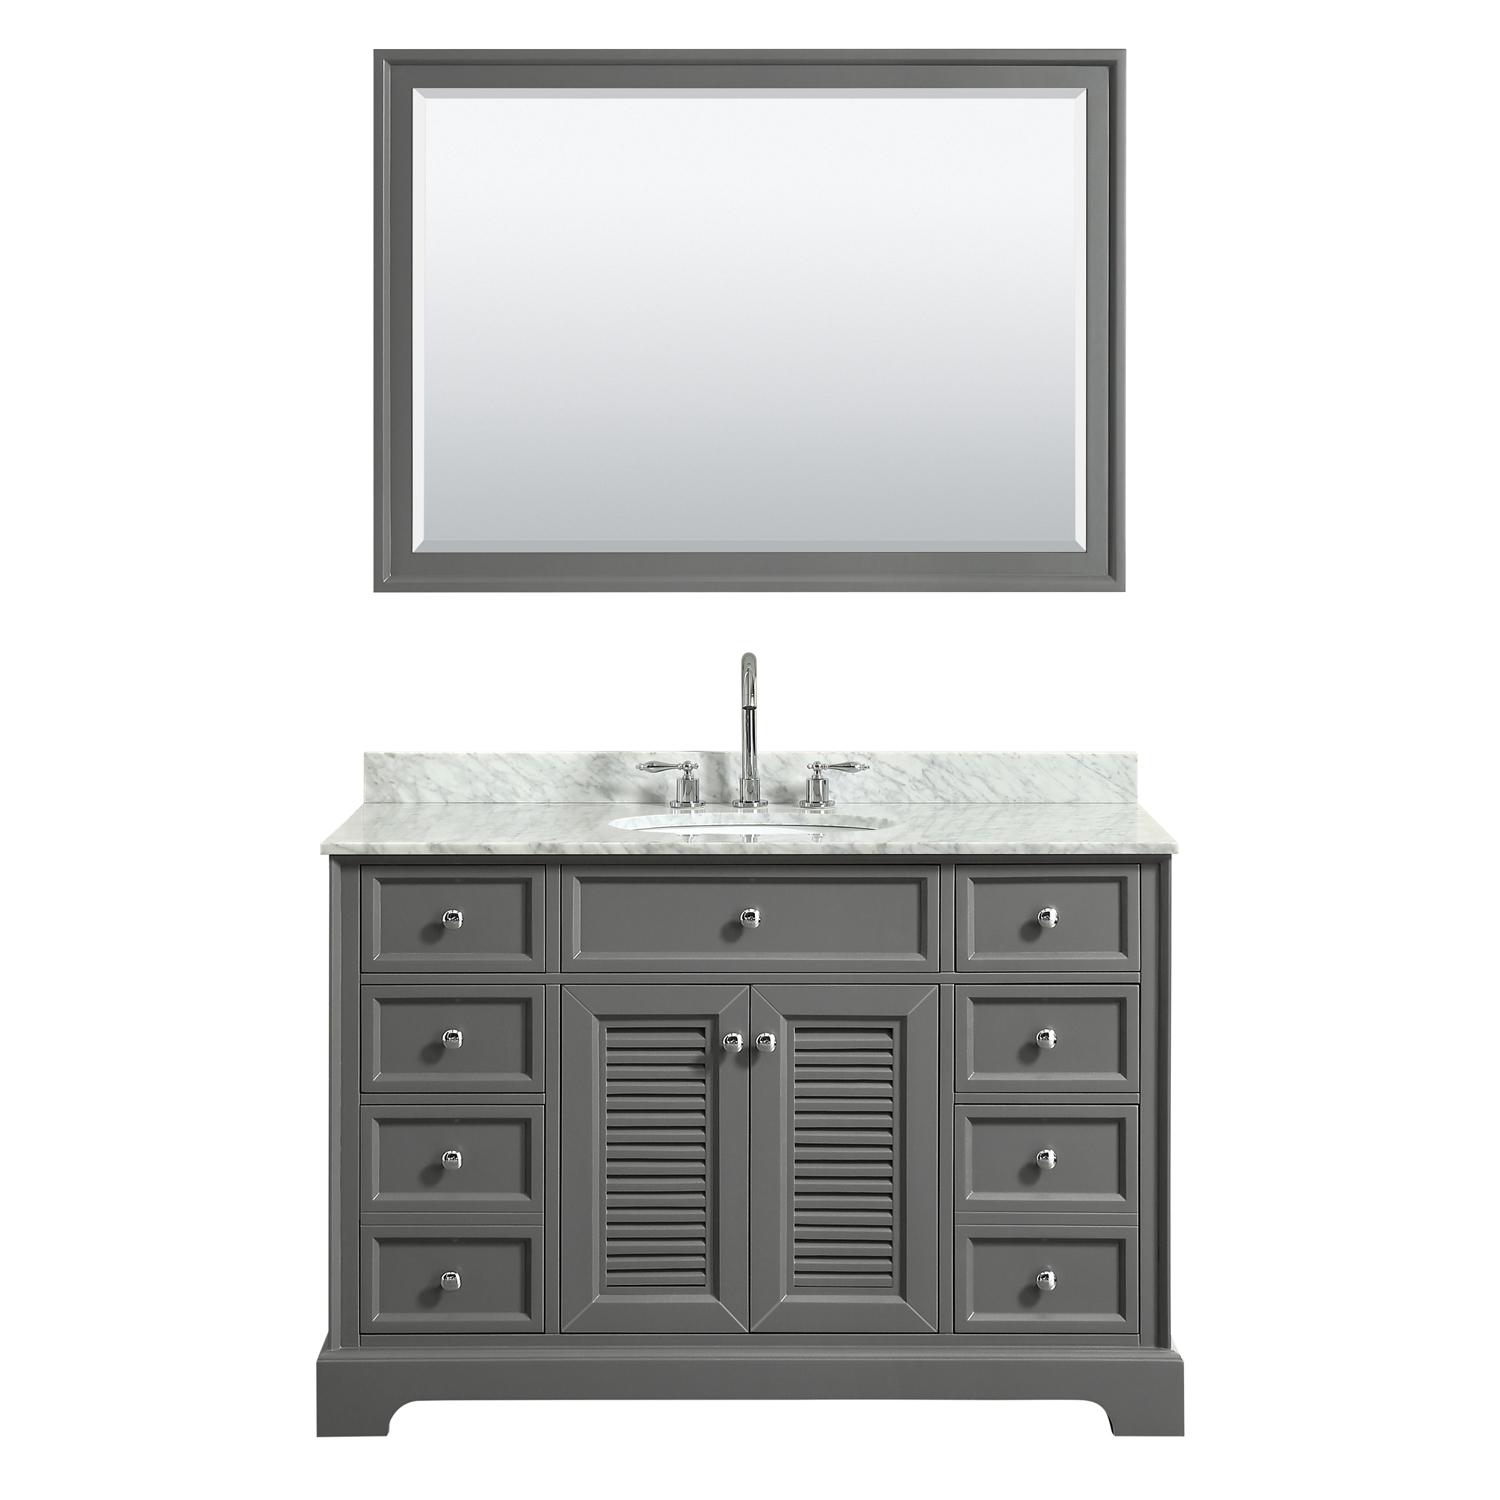 "48"" Single Bathroom Vanity in Dark Gray, White Carrara Marble Countertop, Undermount Oval Sink, and Mirror Options"